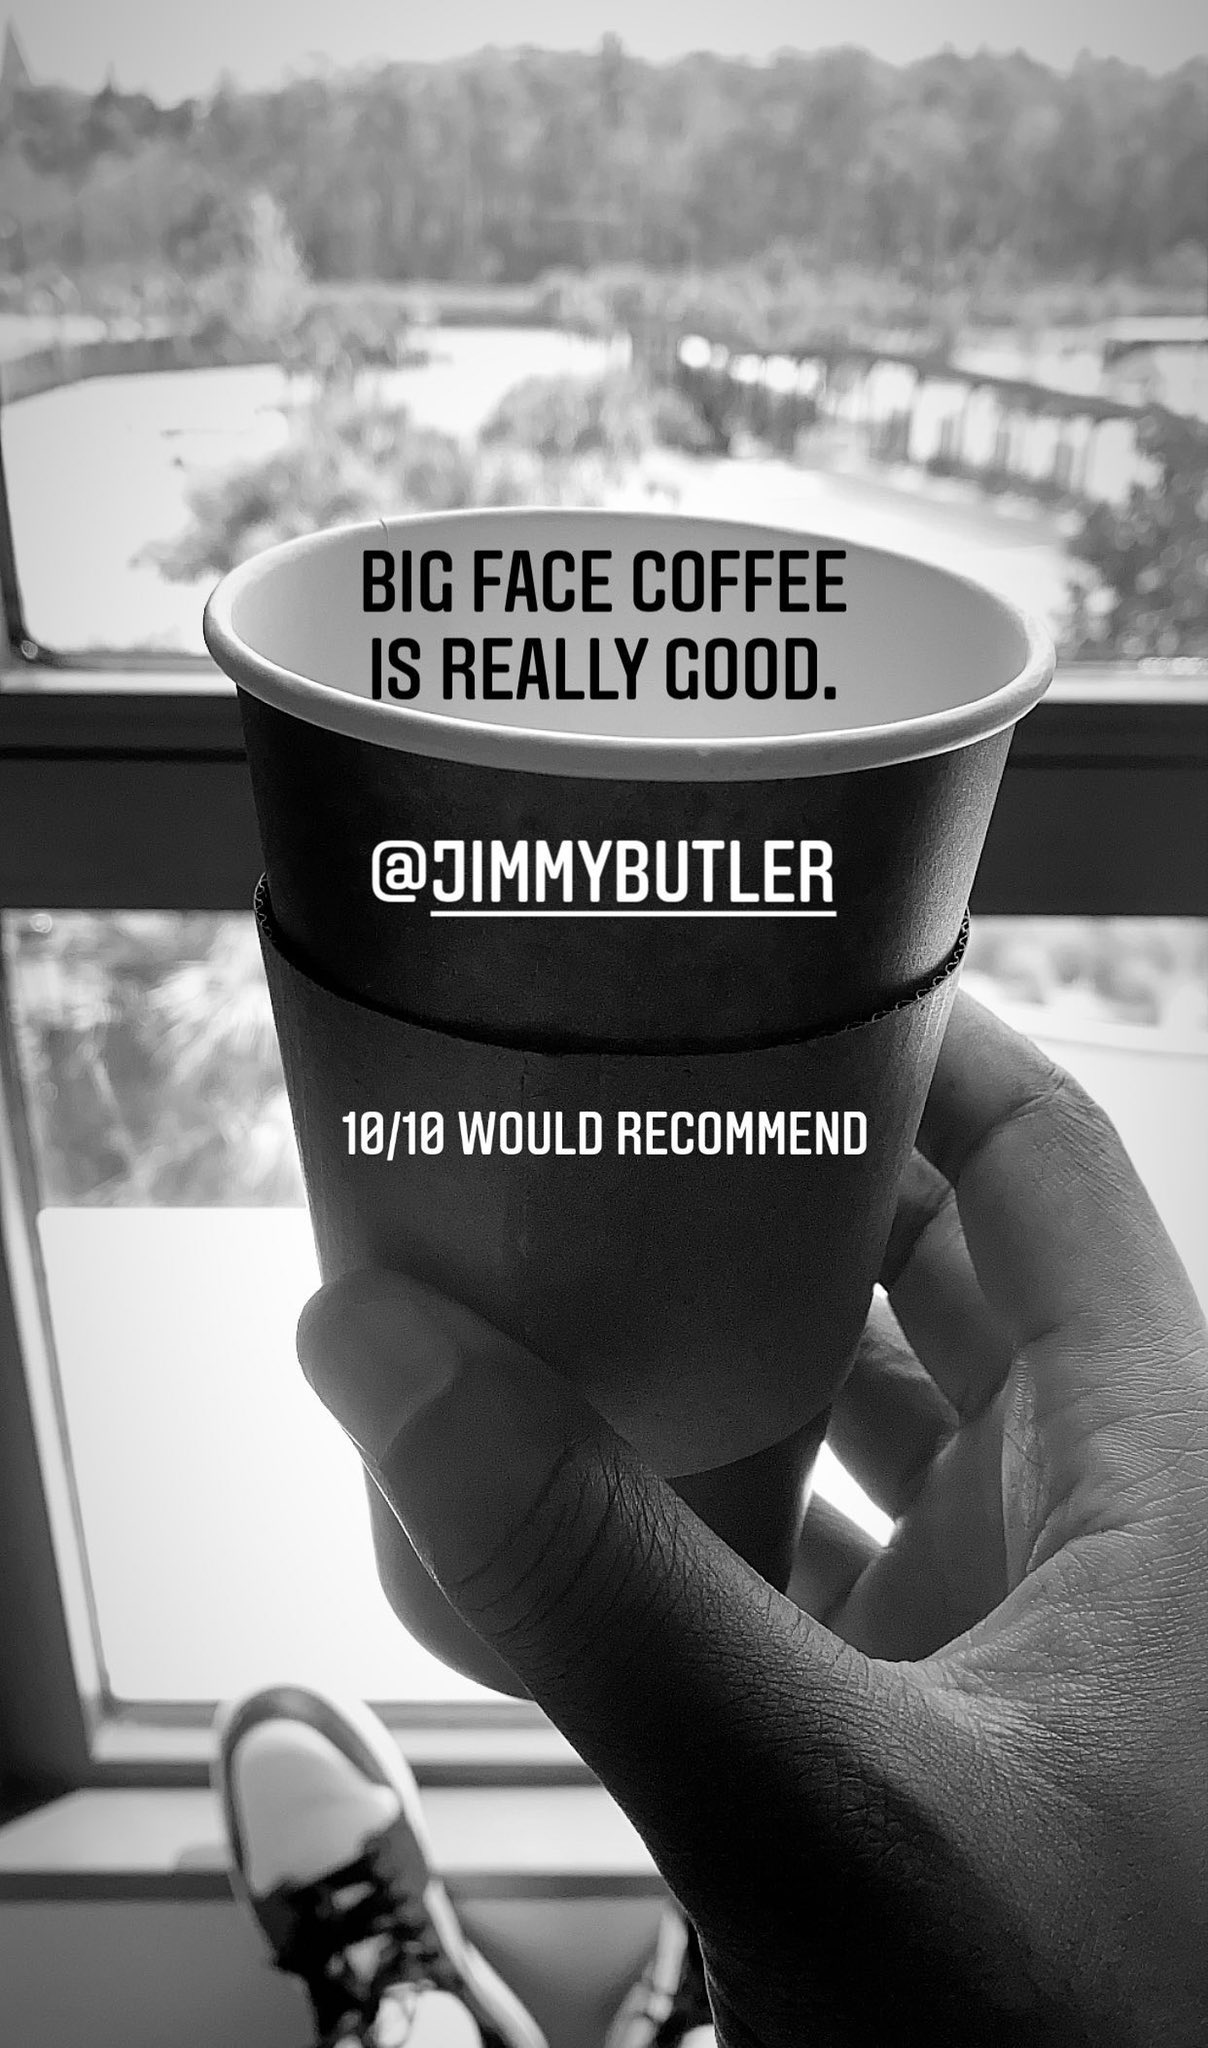 Nba Bubble Life On Twitter Big Face Coffee Getting Great Reviews Jimmybutler Mister Pierce